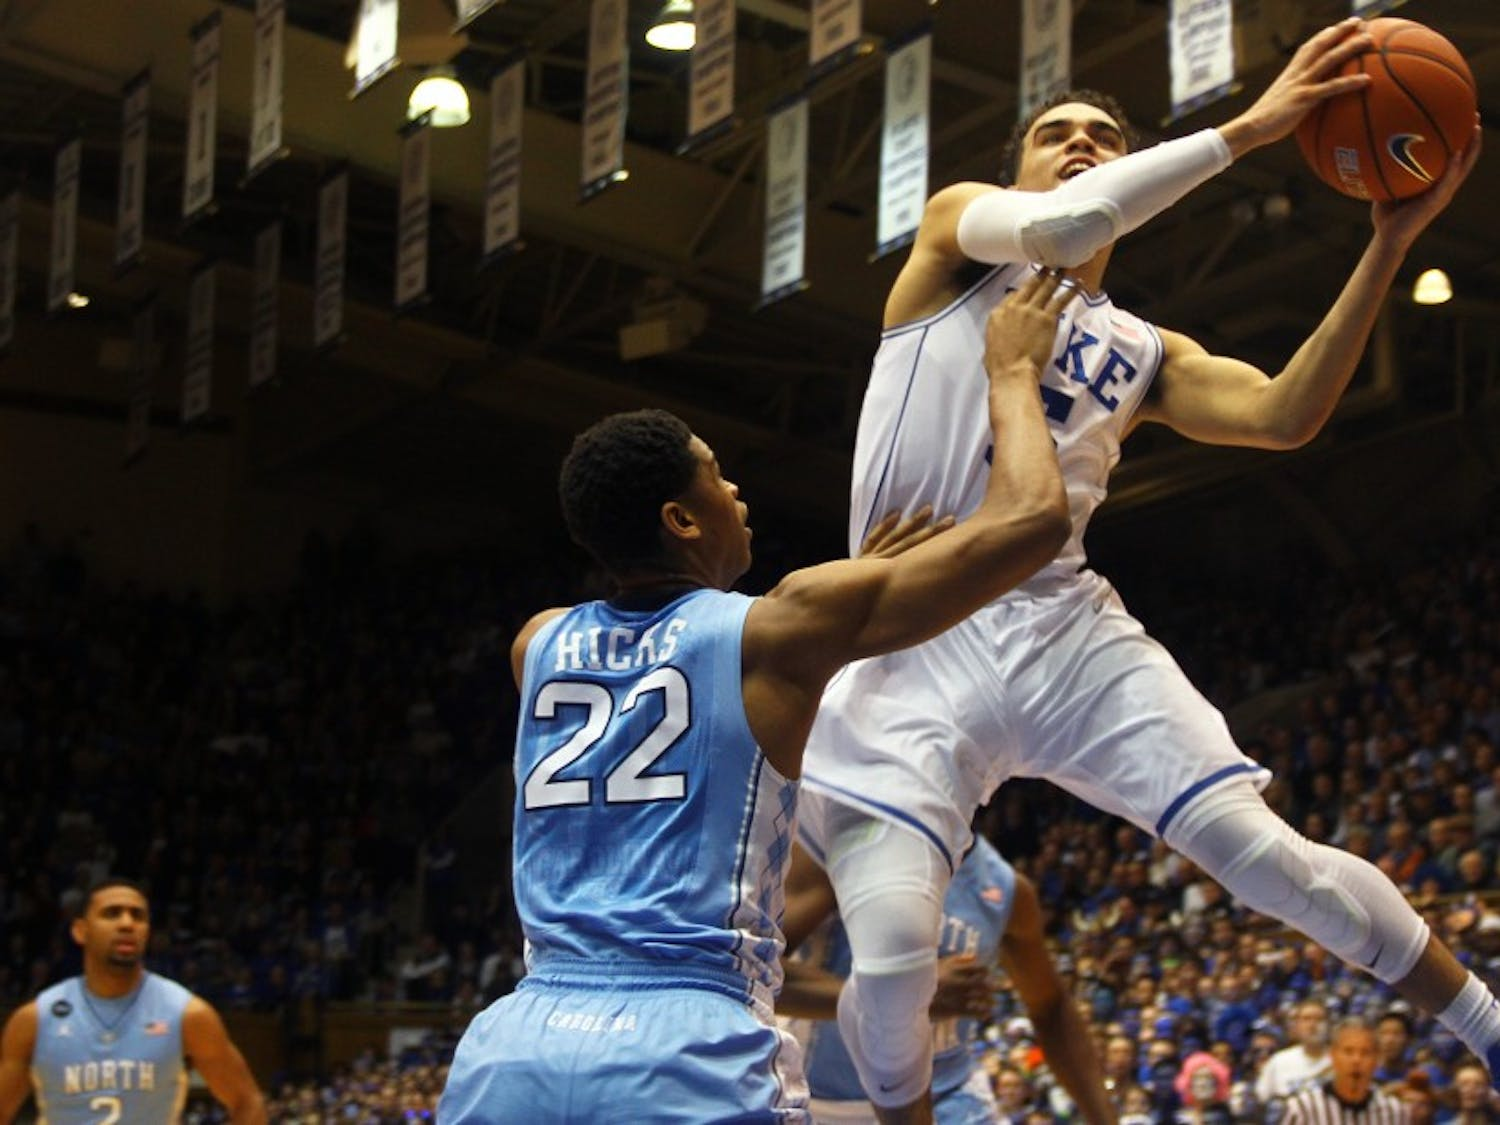 Tyus Jones showed how clutch he was by leading an improbable comeback Feb. 18 against North Carolina.